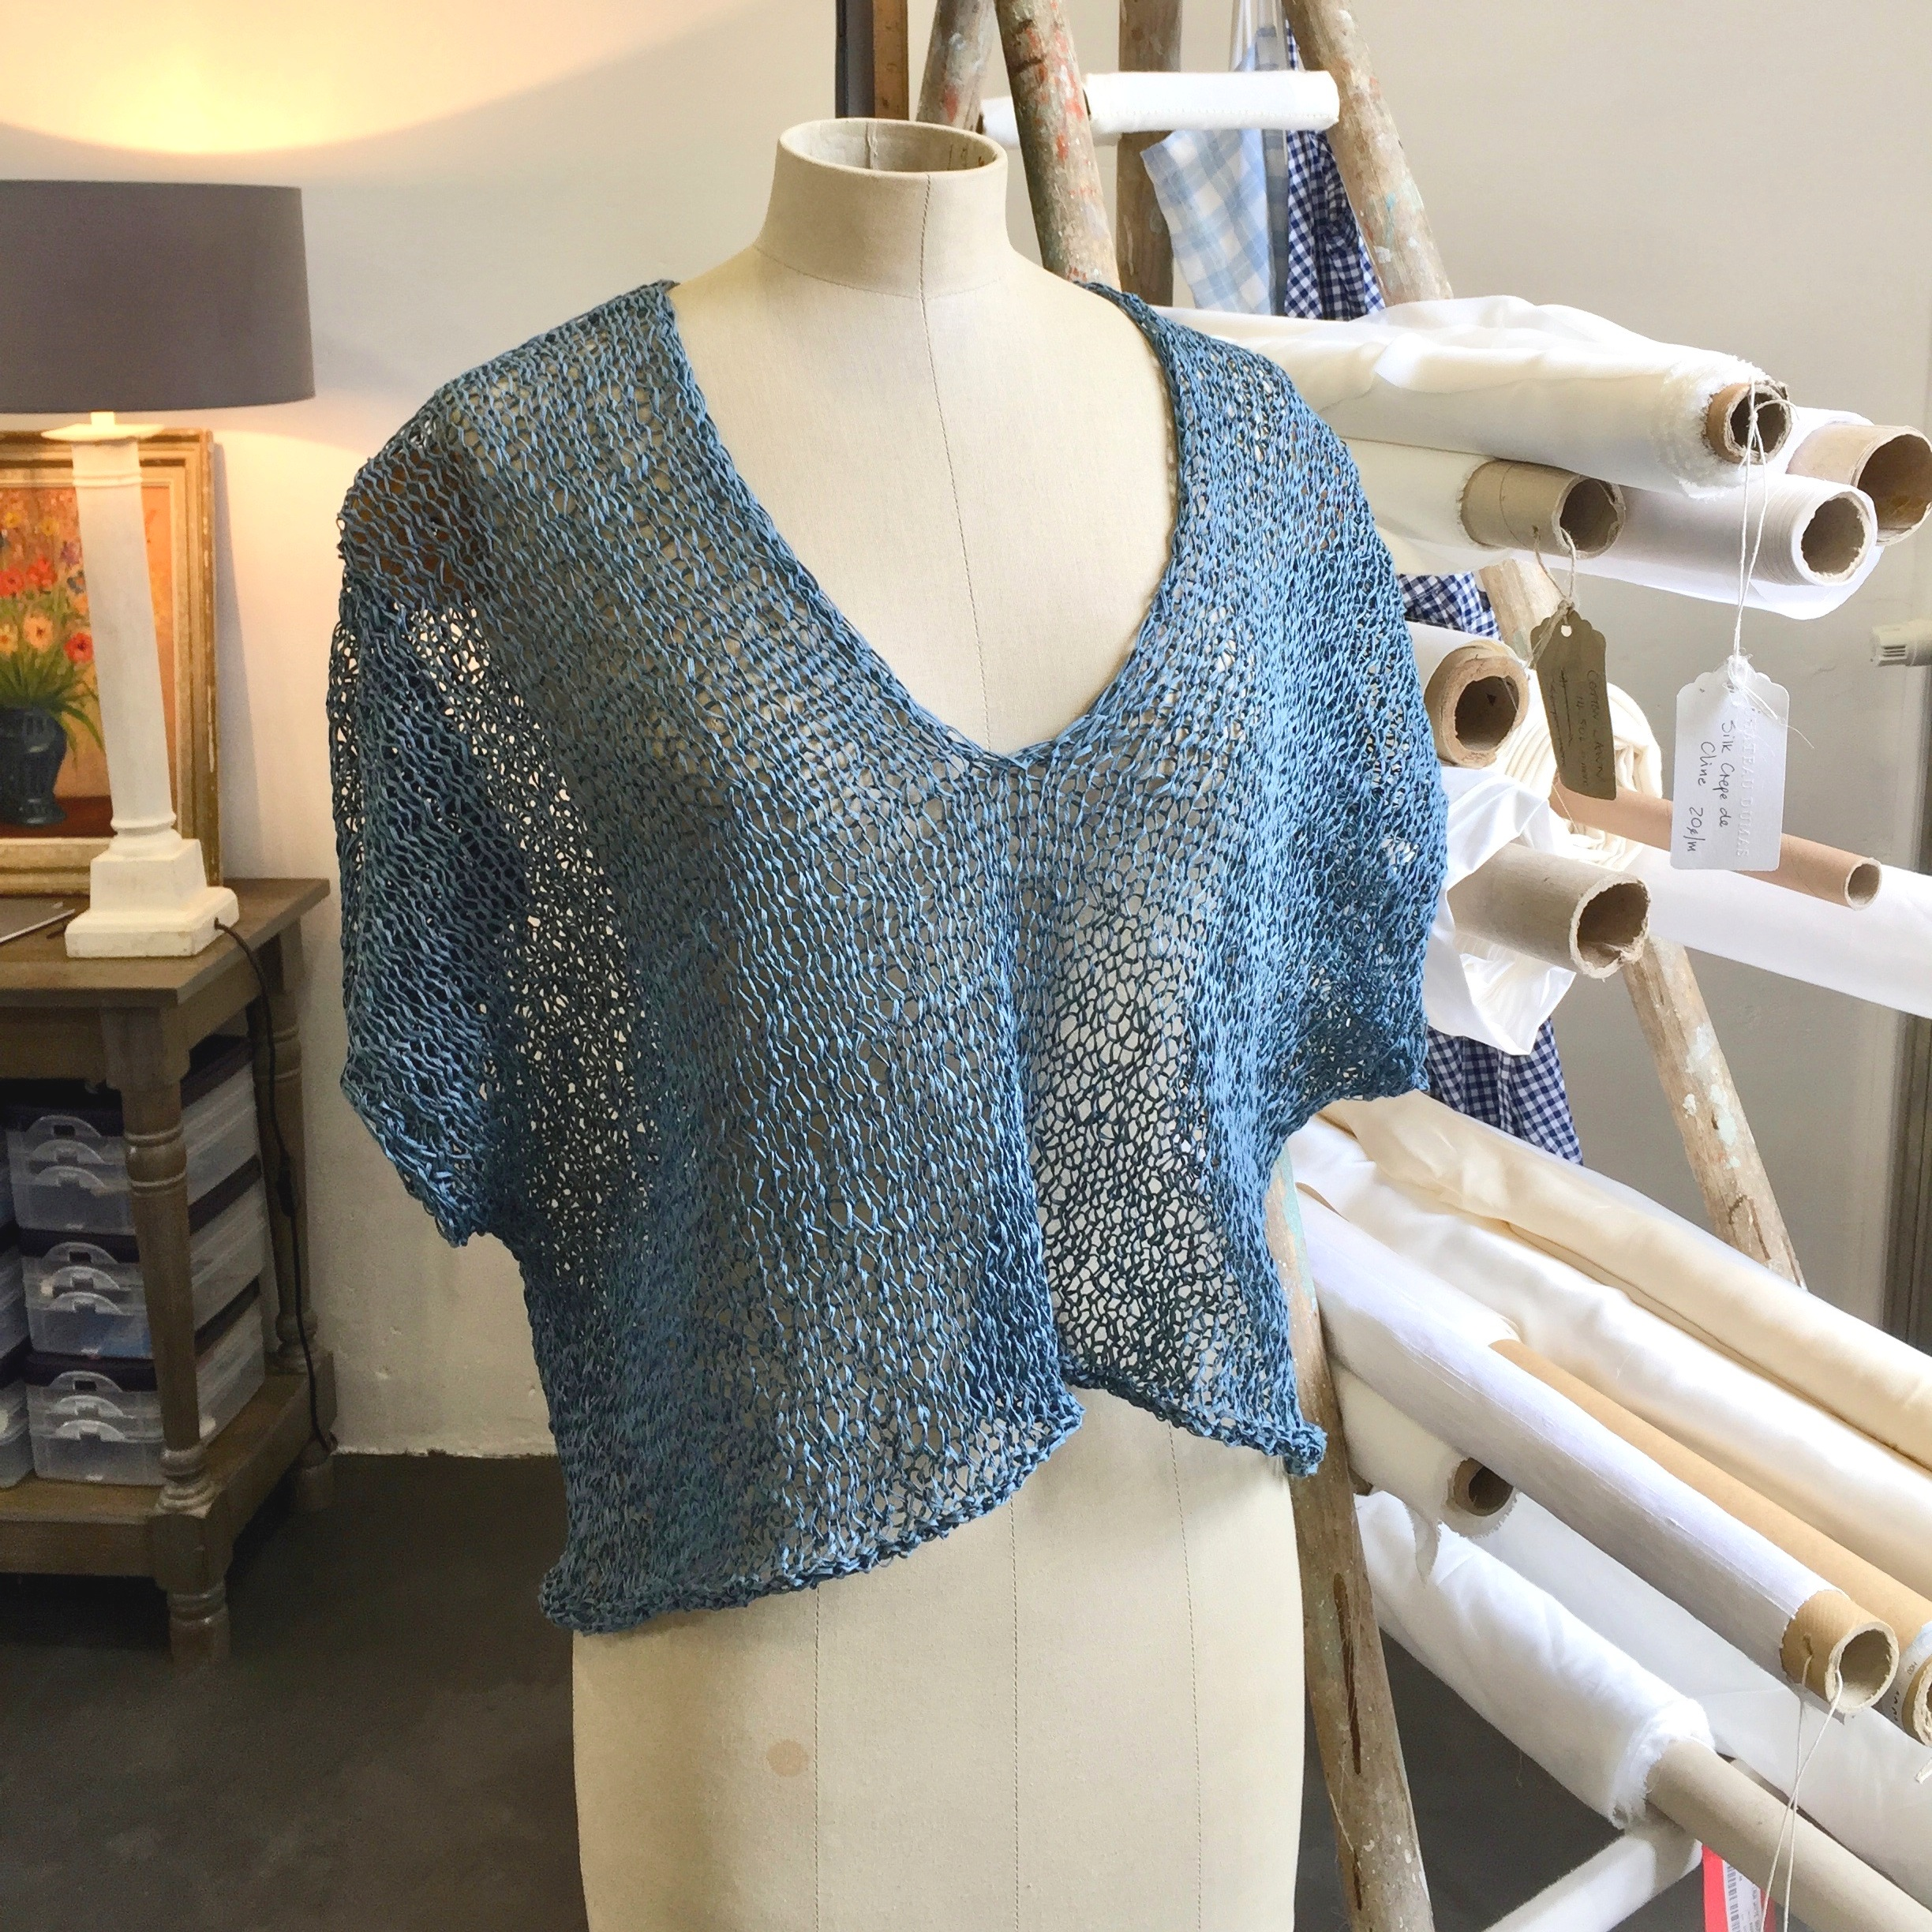 Travelling Yarns - with CocoknitsAugust 2015, September 2017